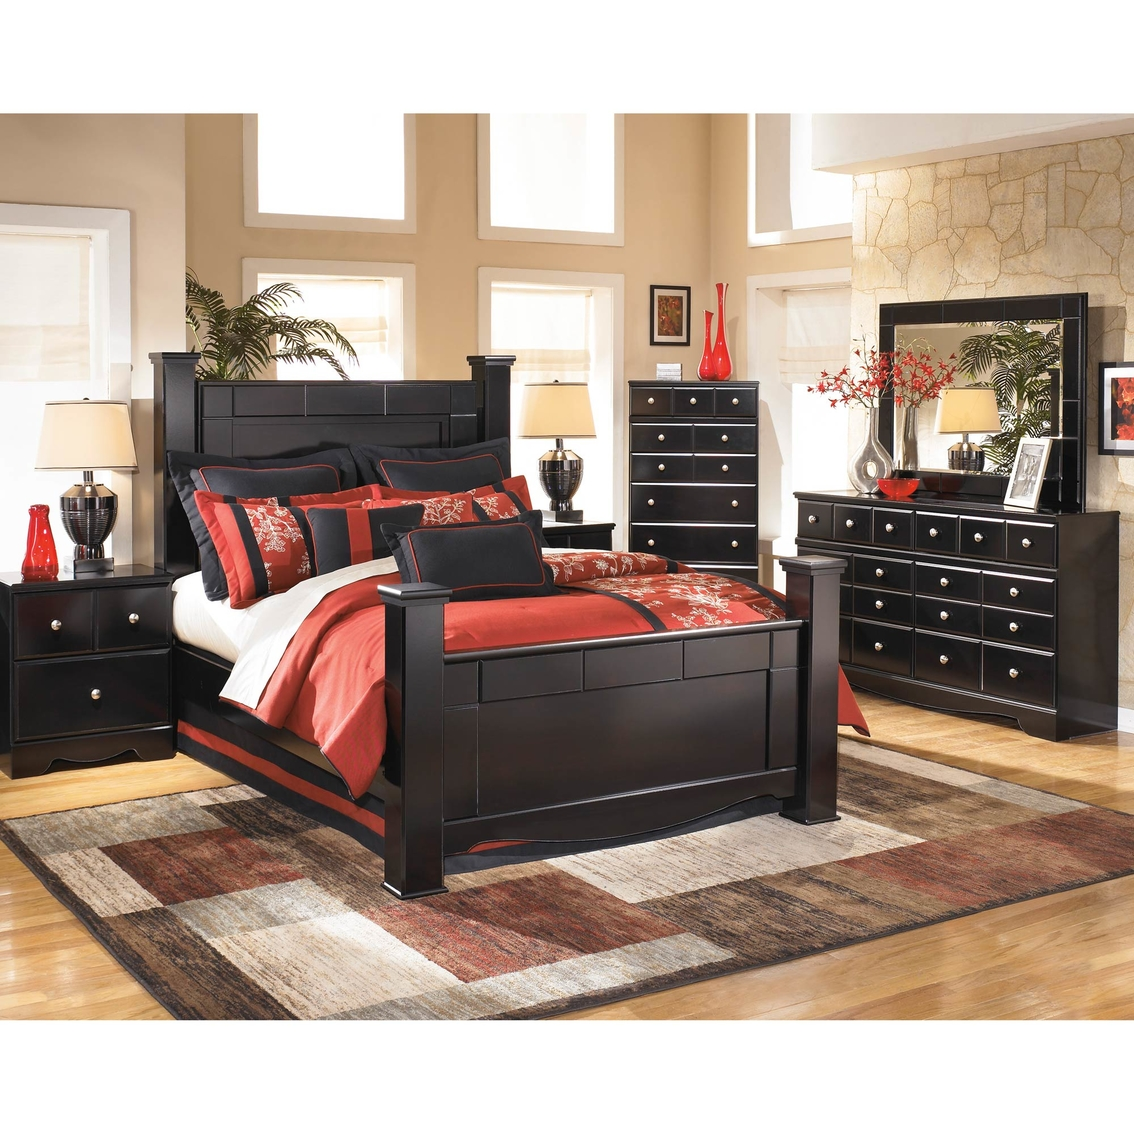 Signature Design By Ashley Shay Poster 5 Pc Set Bedroom Sets Furniture Amp Appliances Shop